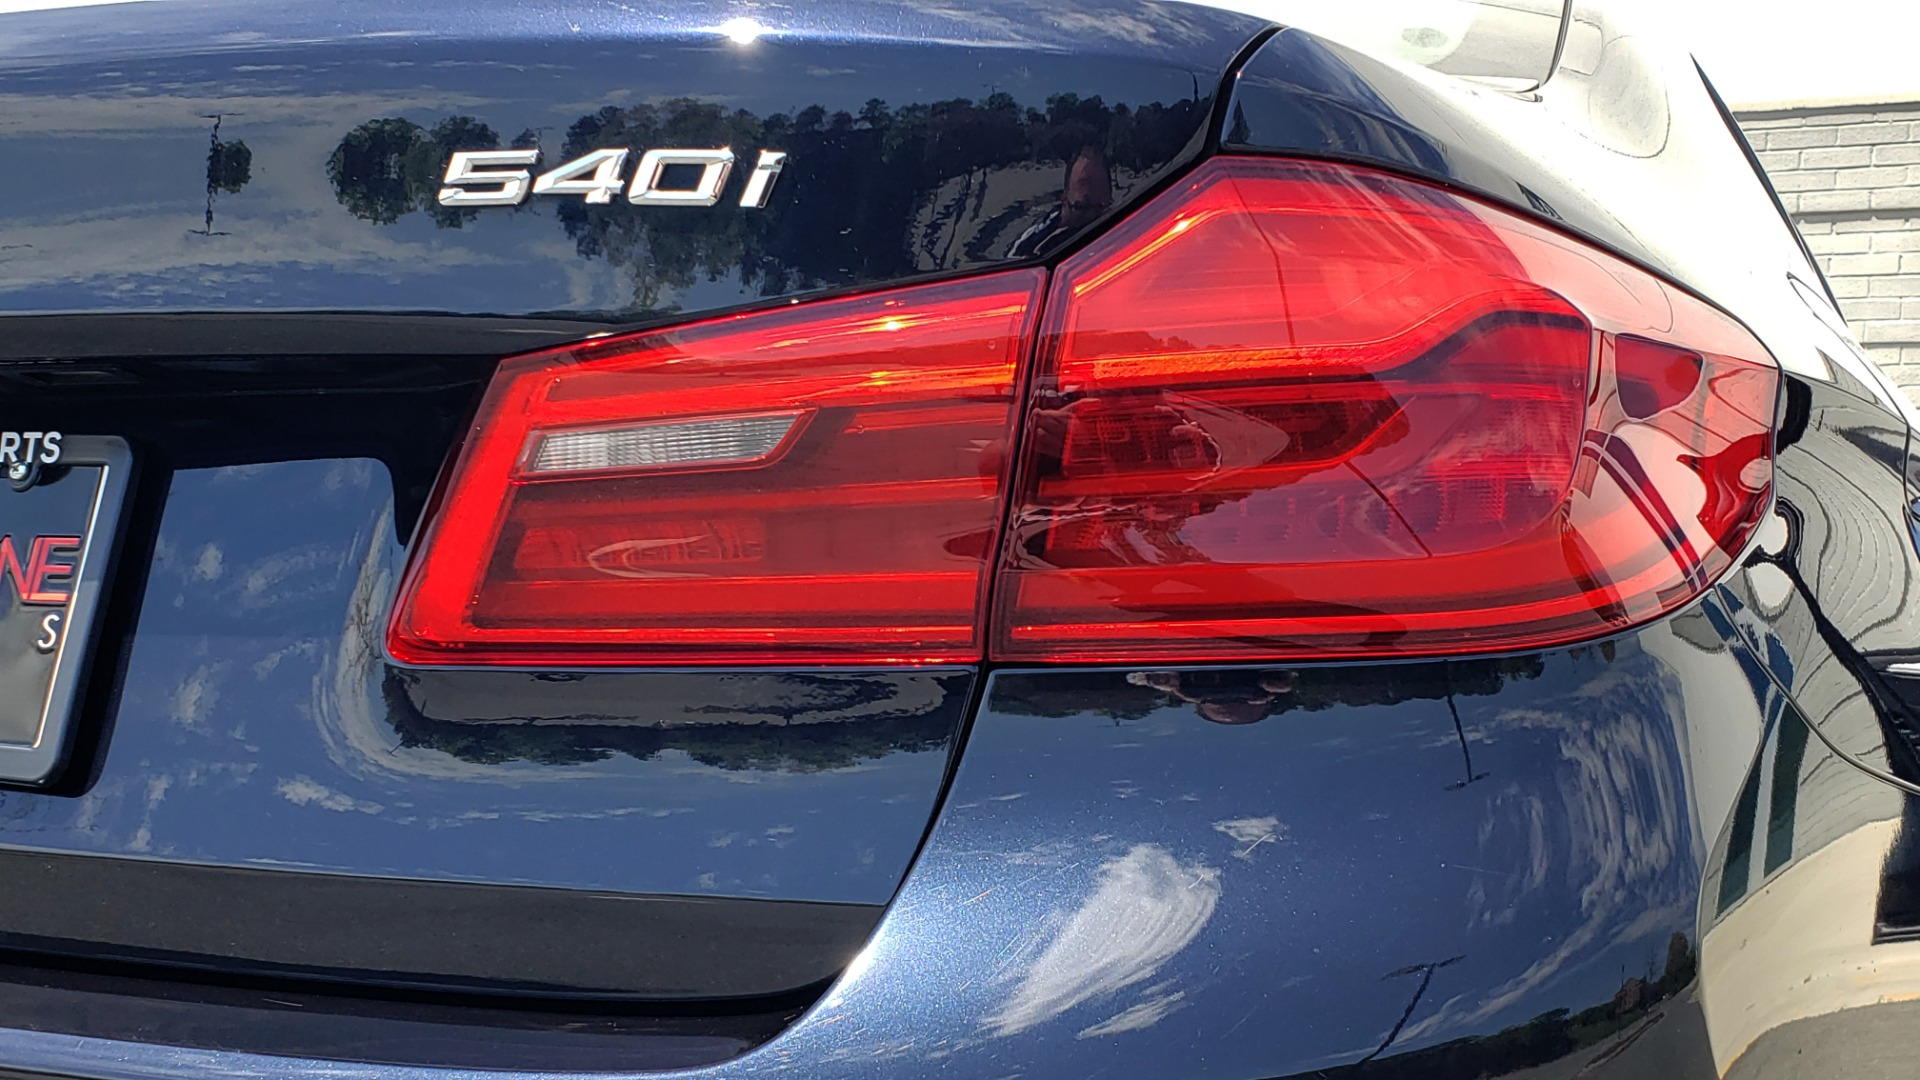 Used 2017 BMW 5 SERIES 540I XDRIVE M-SPORT / PREMIUM / DRVR ASST PLUS / CLD WTHR / LUXURY for sale Sold at Formula Imports in Charlotte NC 28227 31